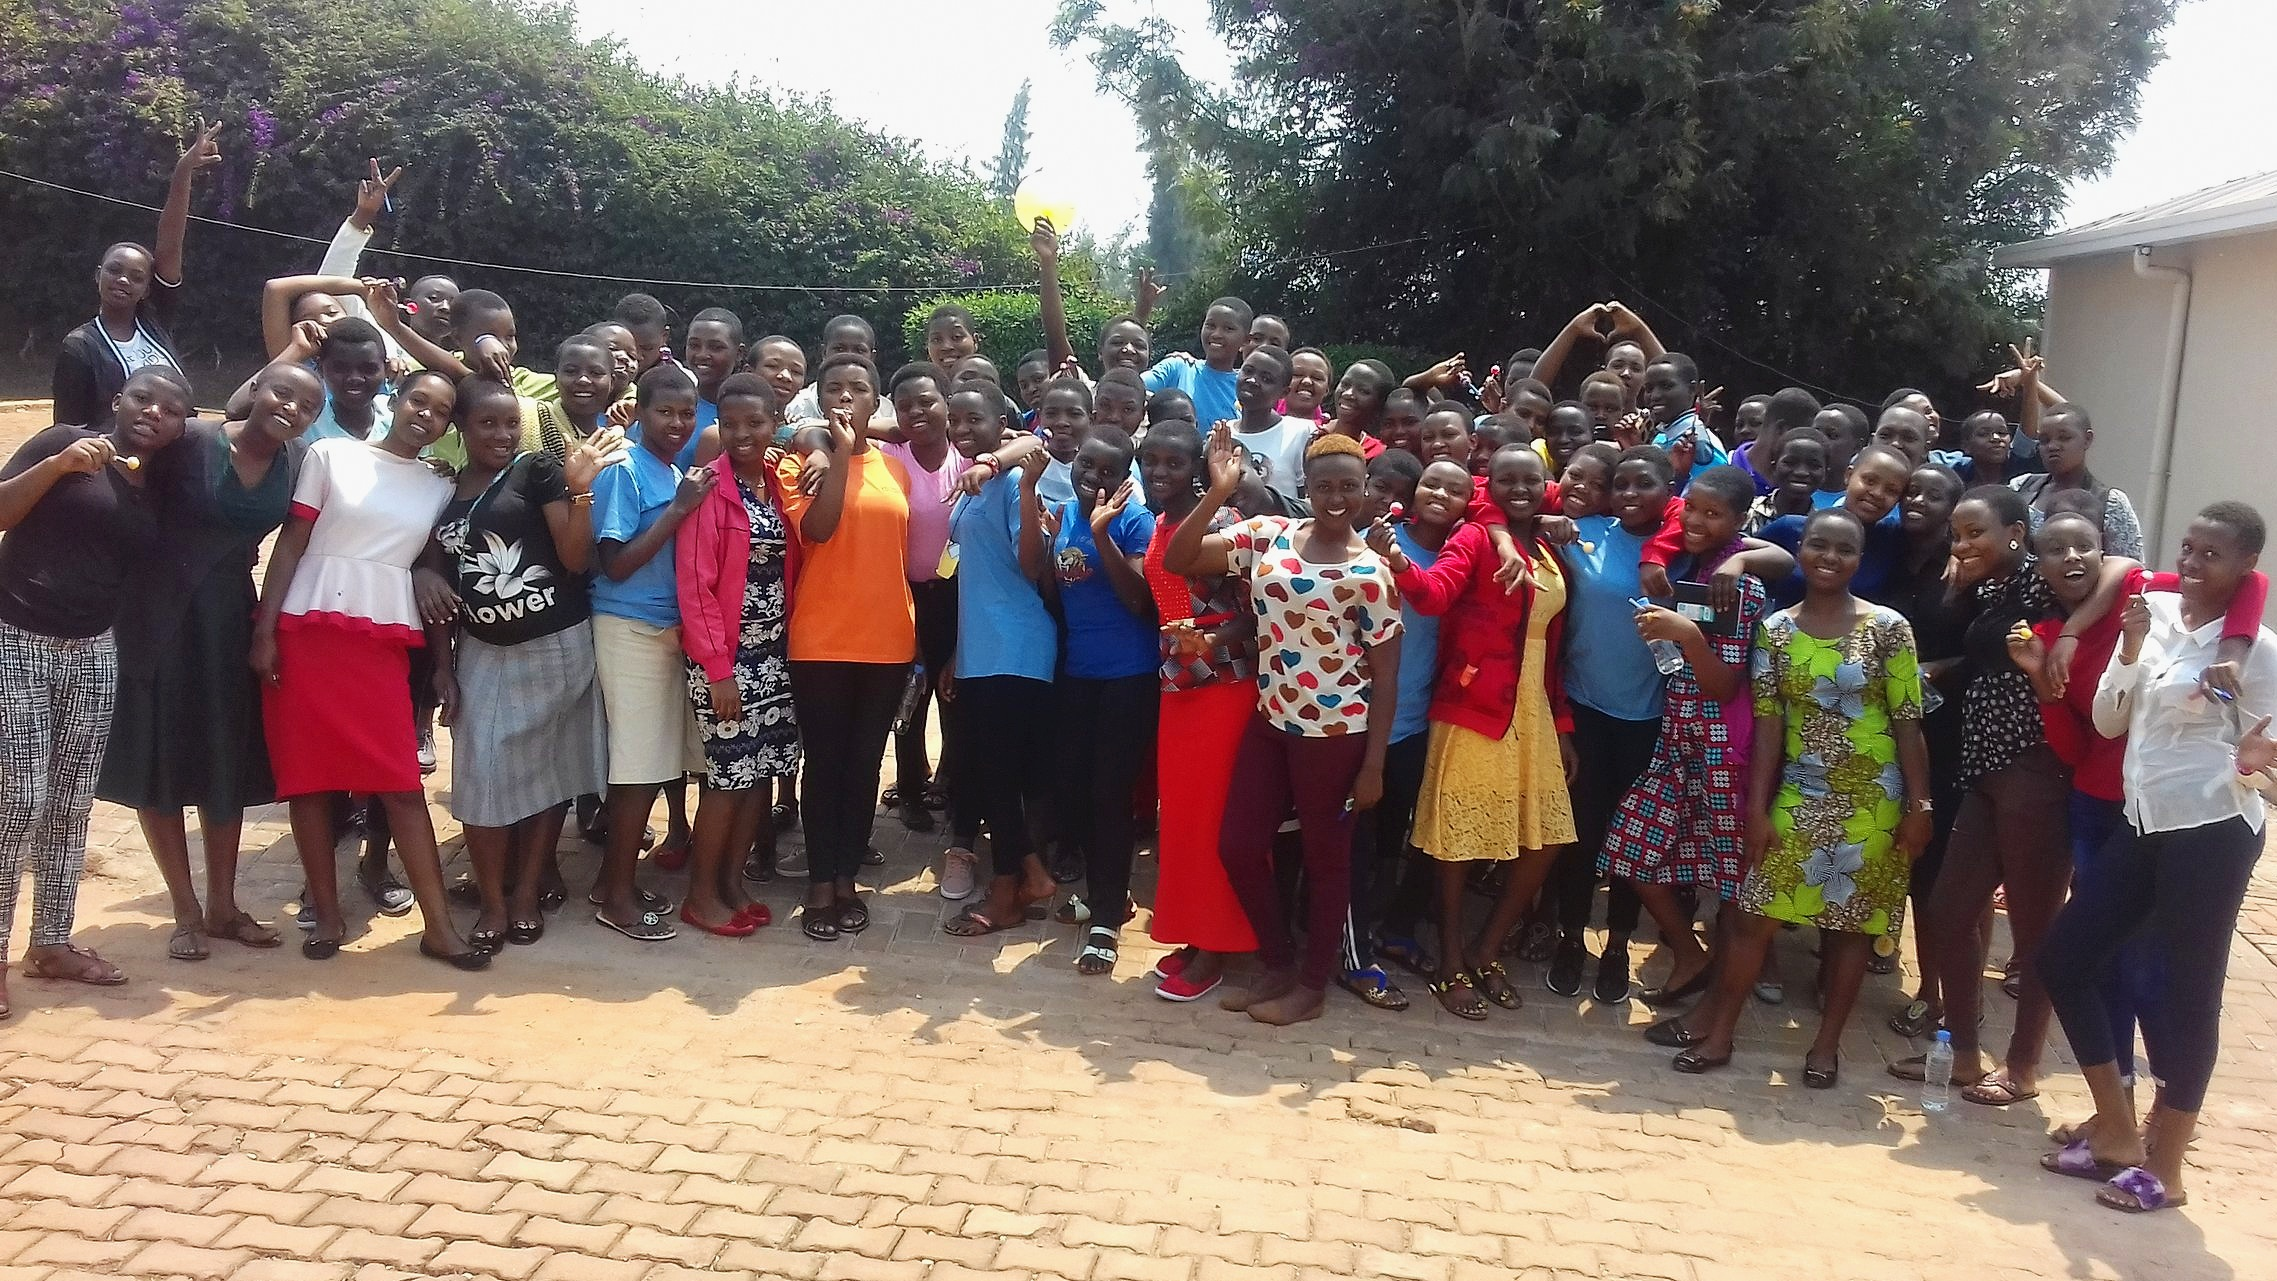 All 70 secondary school scholars get together 3 times per year at the Komera Leadership Summits.